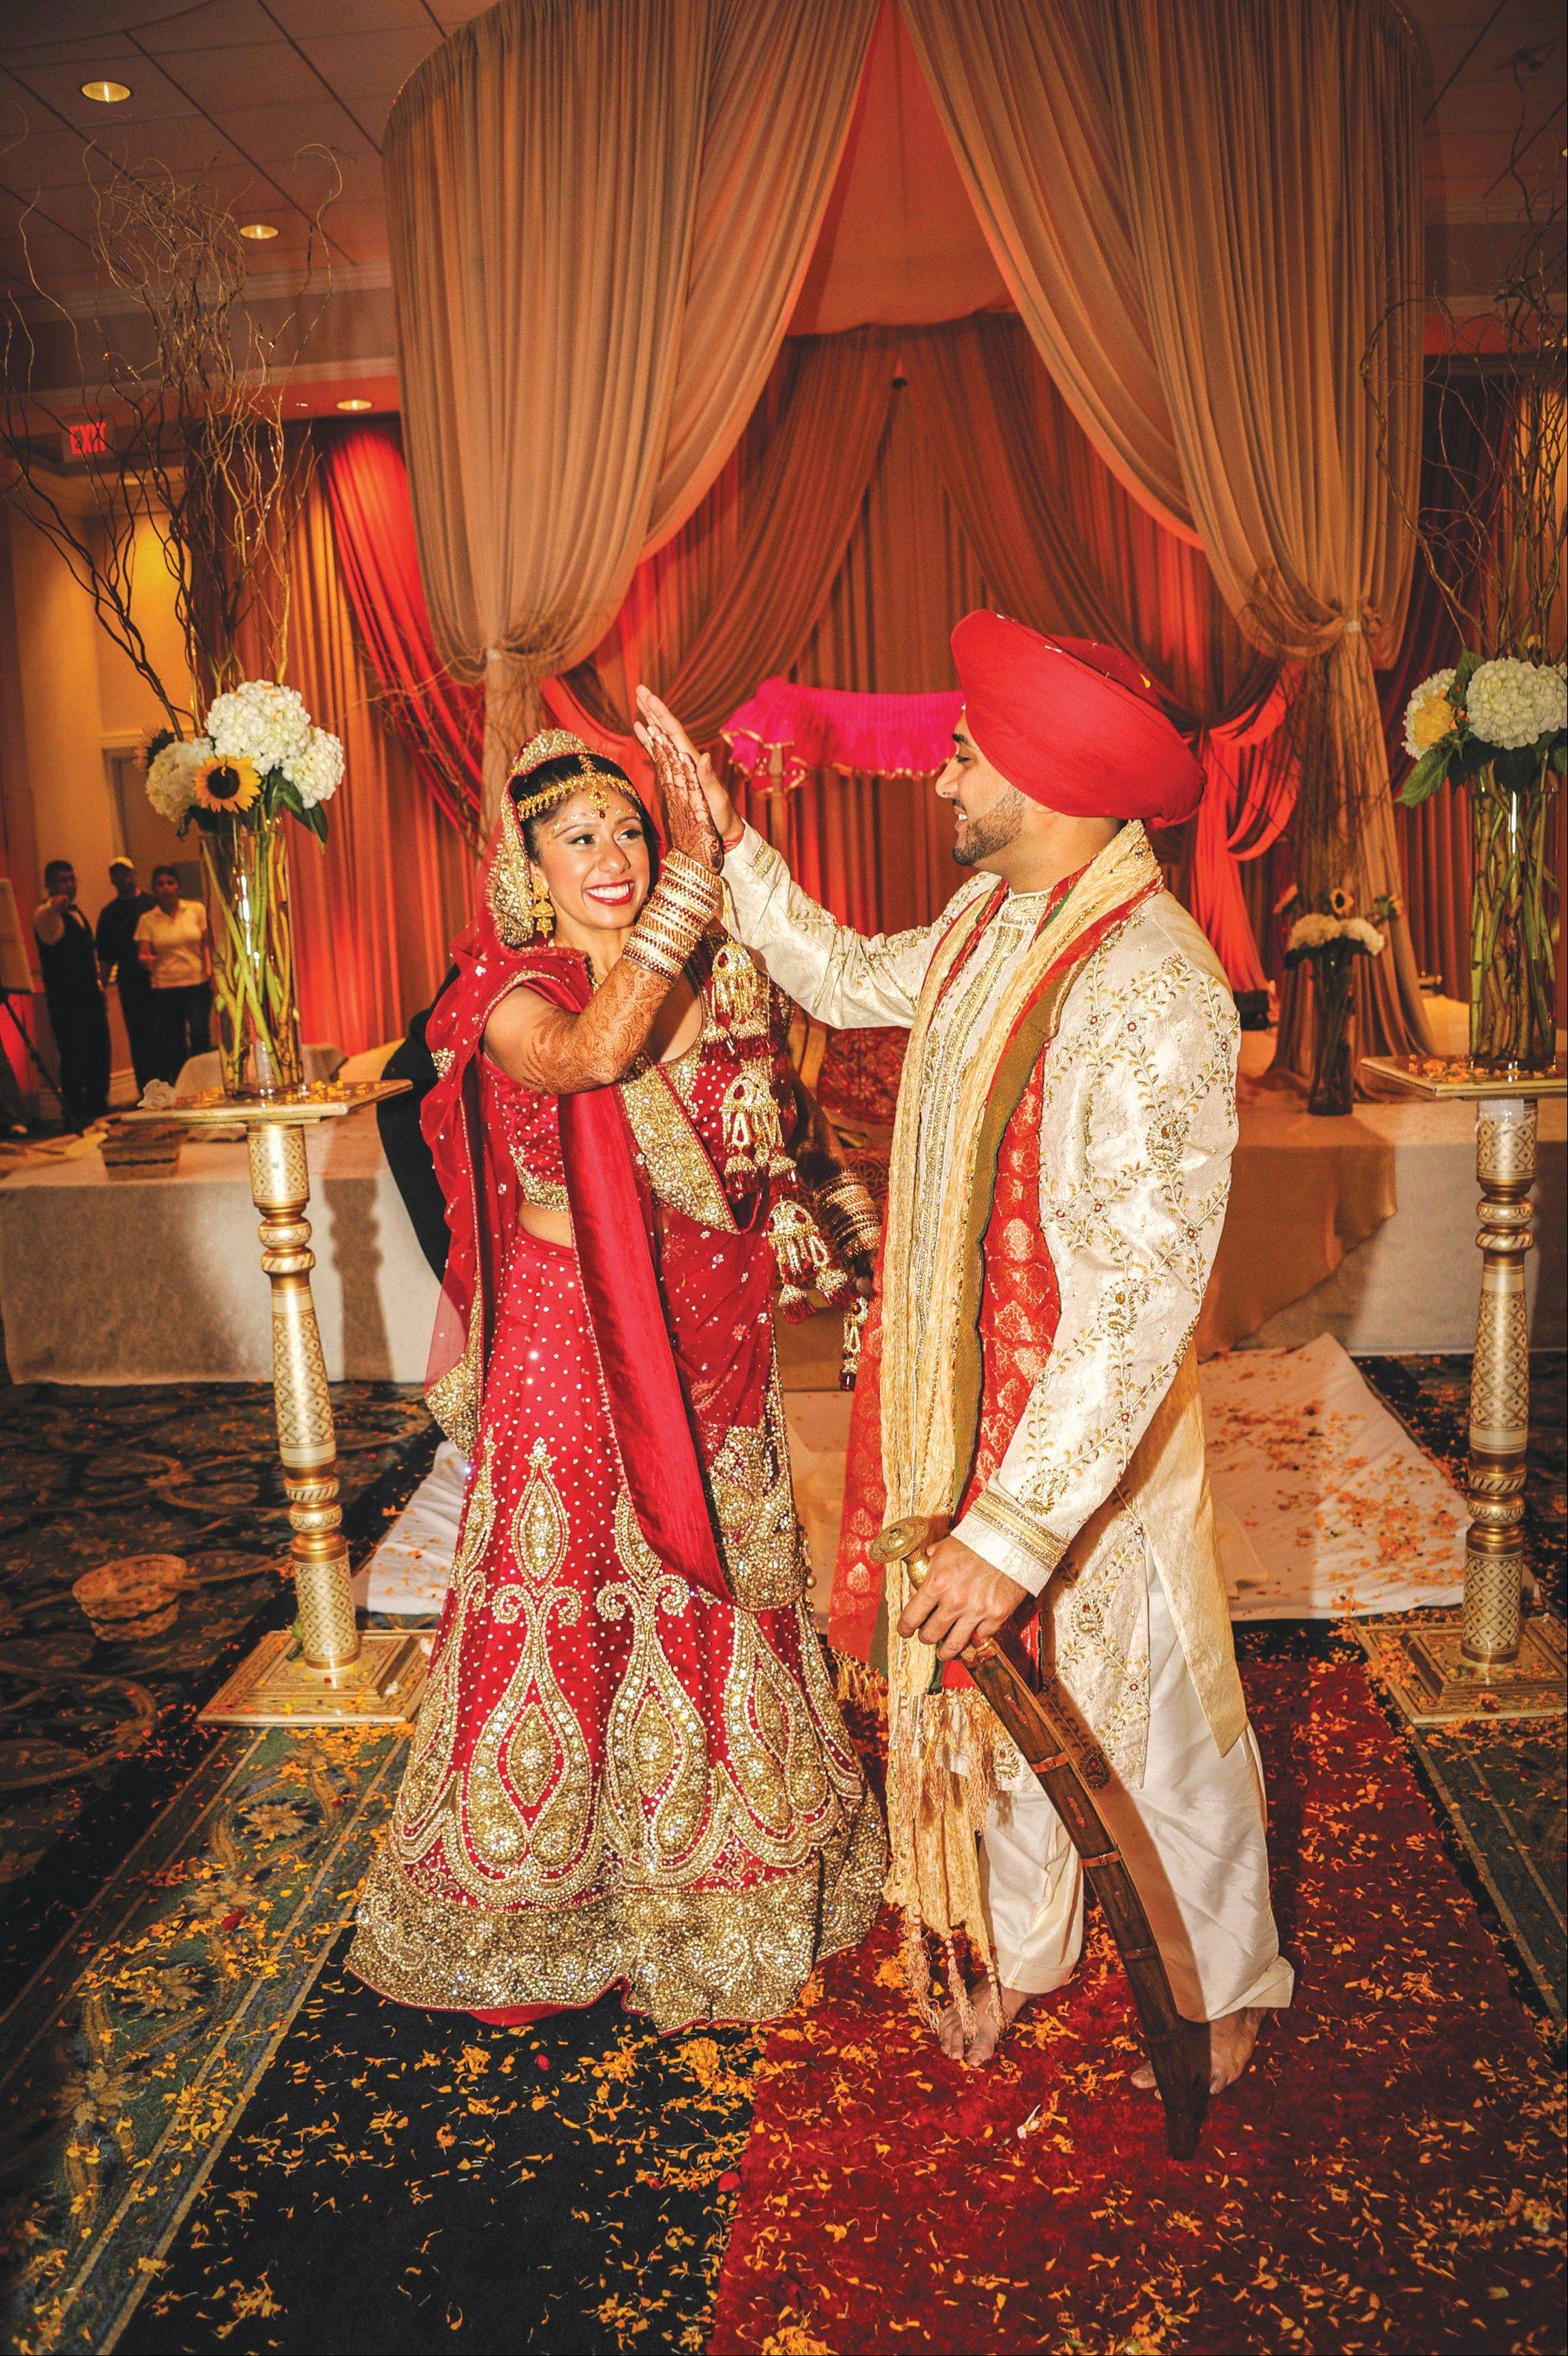 Chef Suzy Singh and her husband, Palatine native Amit Wadehra, met through an online dating service, but returned to their East Asian roots in planning their wedding.